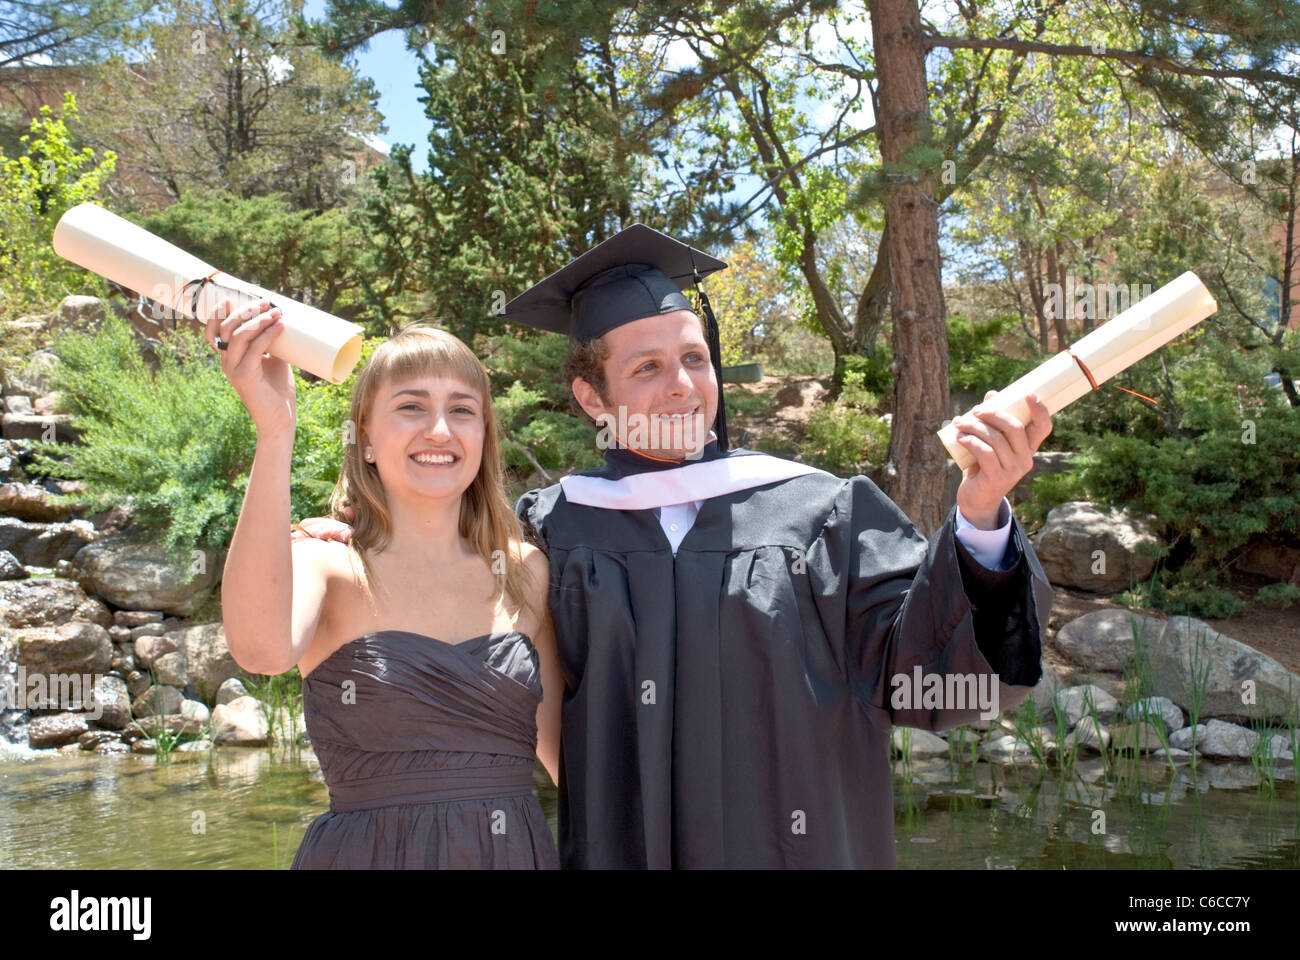 two graduates wave their diplomas after graduating from st johns stock photo two graduates wave their diplomas after graduating from st johns college in santa fe new